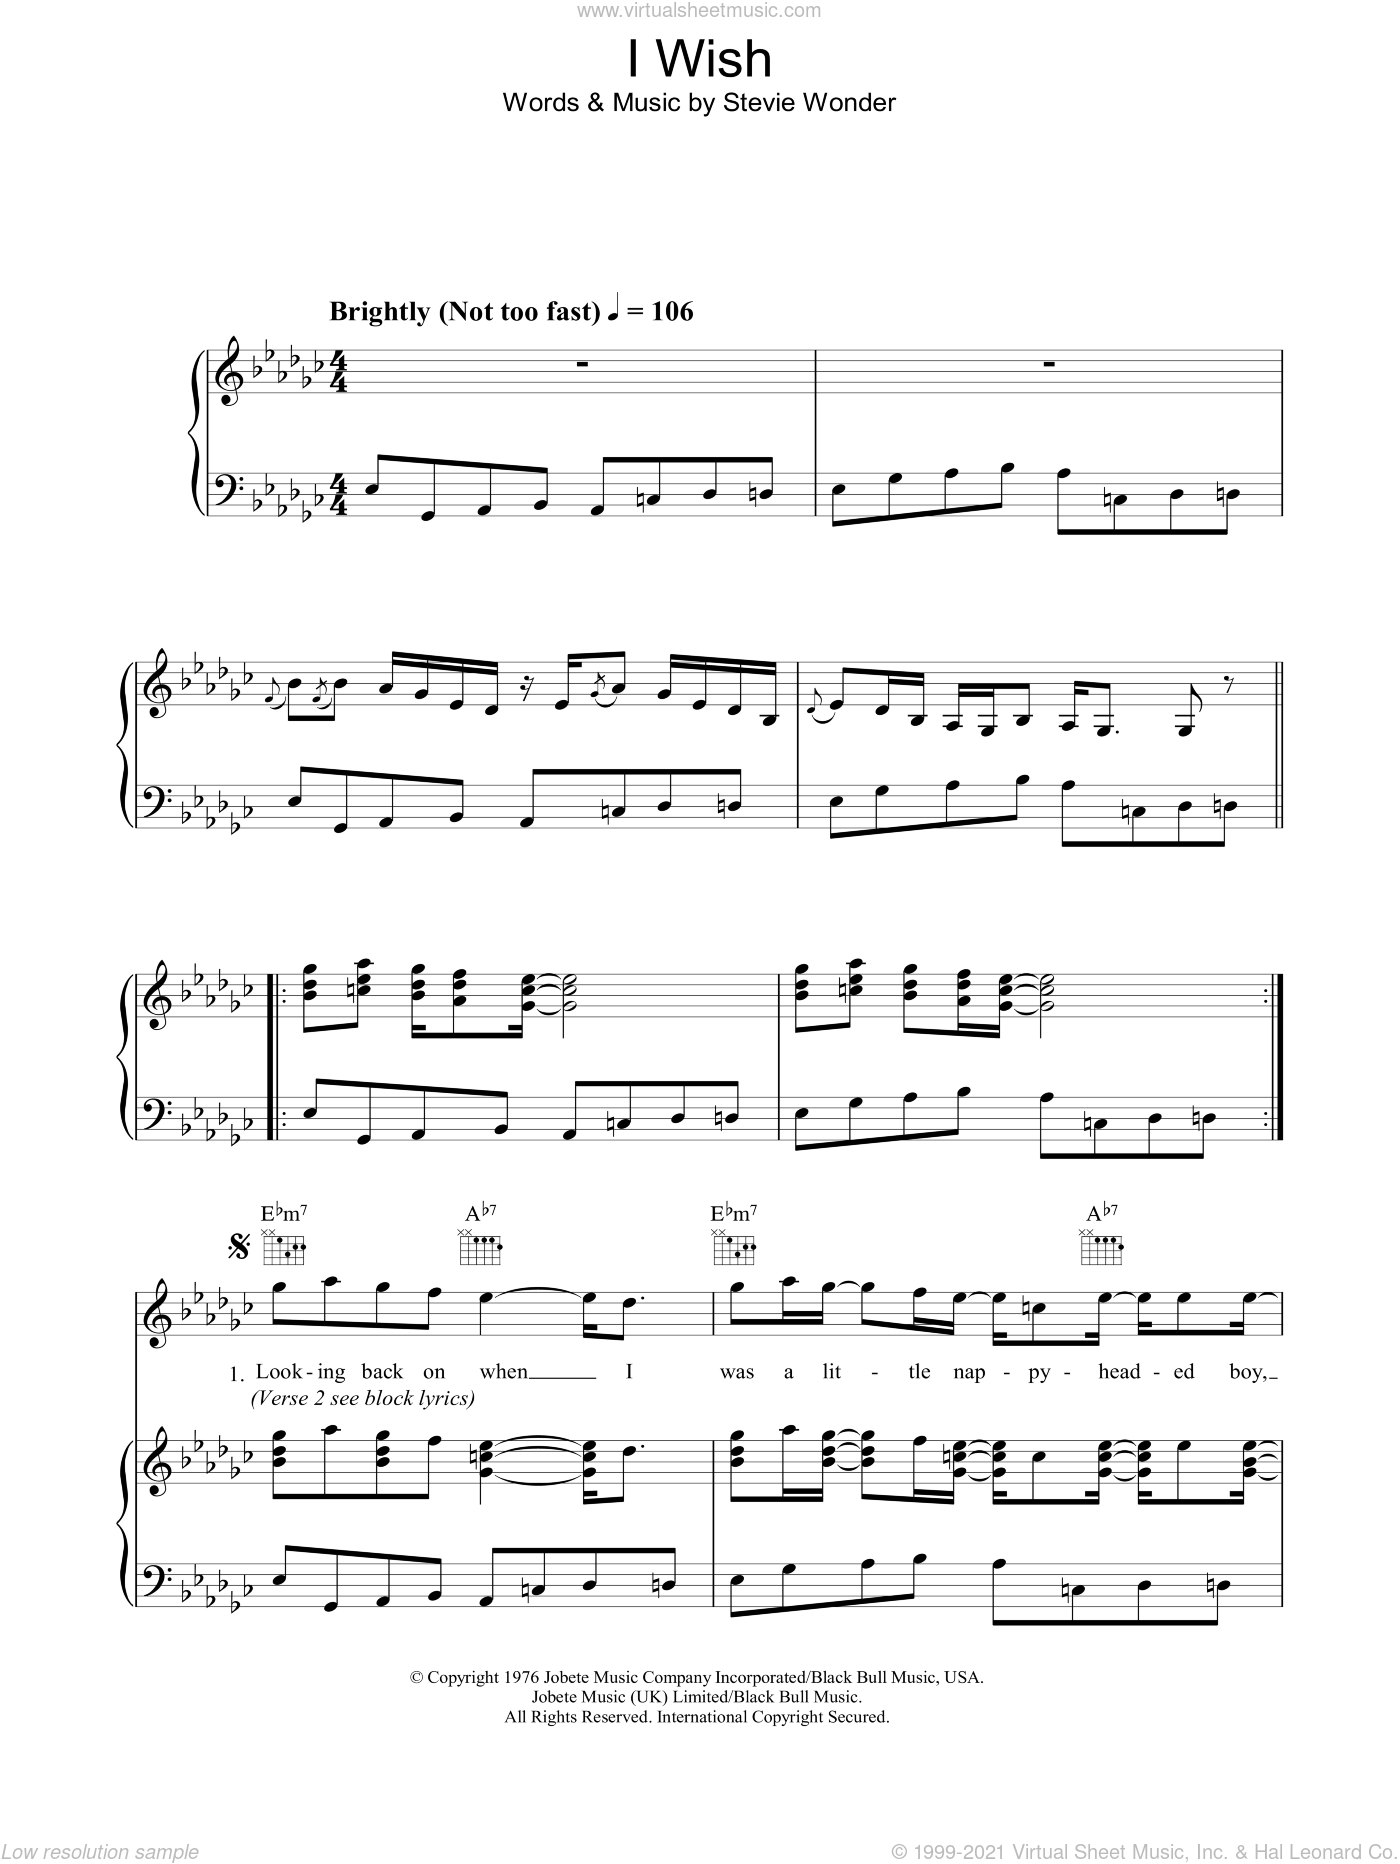 I Wish sheet music for voice, piano or guitar by Stevie Wonder, intermediate skill level